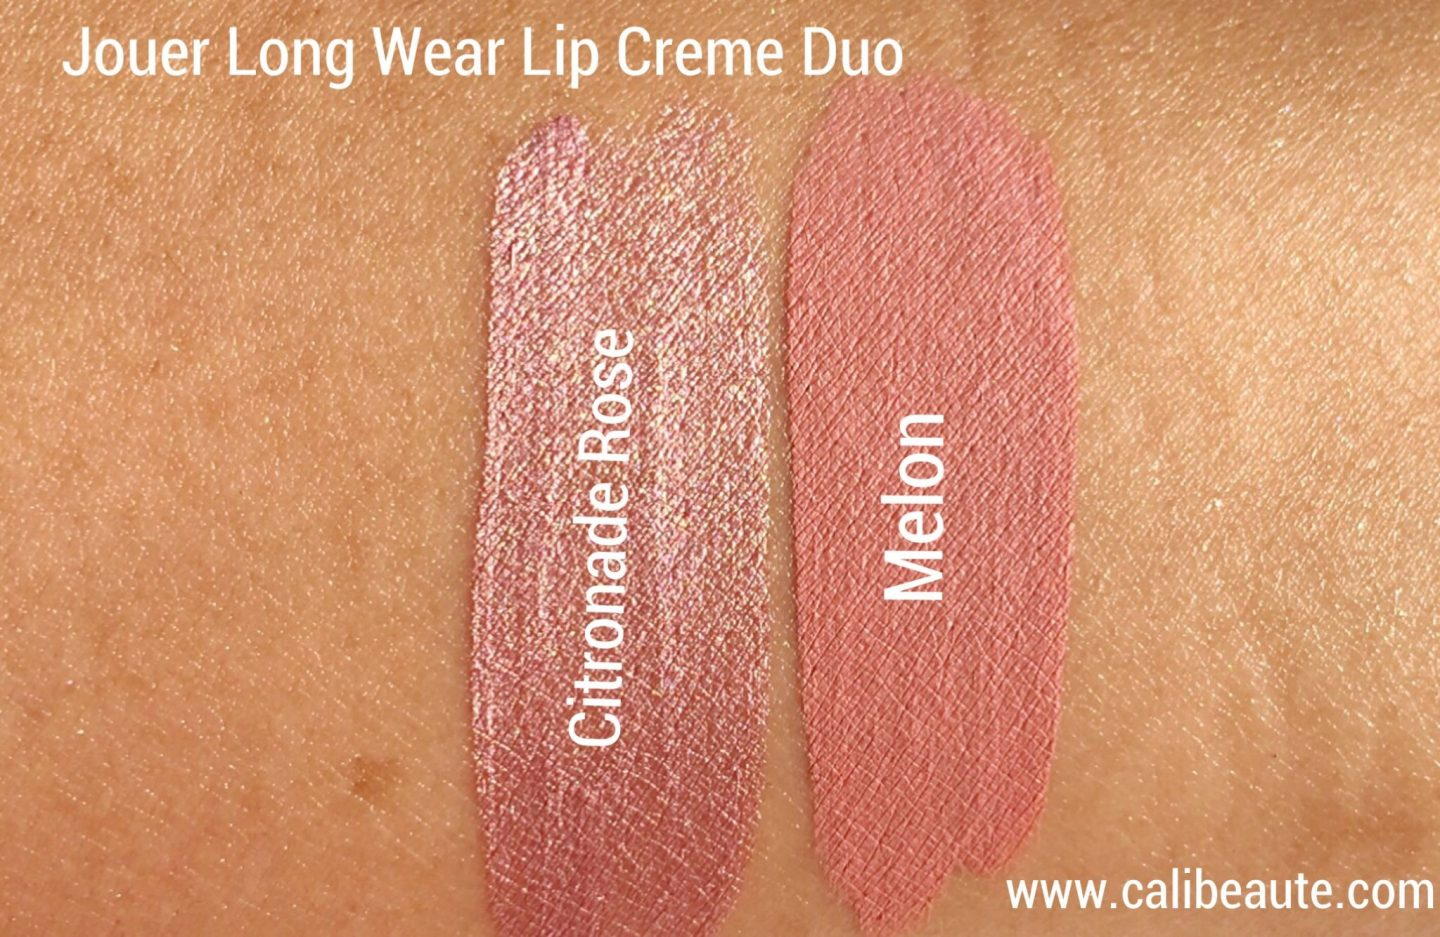 Jouer Lip Creme Duo Swatches Nordstrom Anniversary Sale